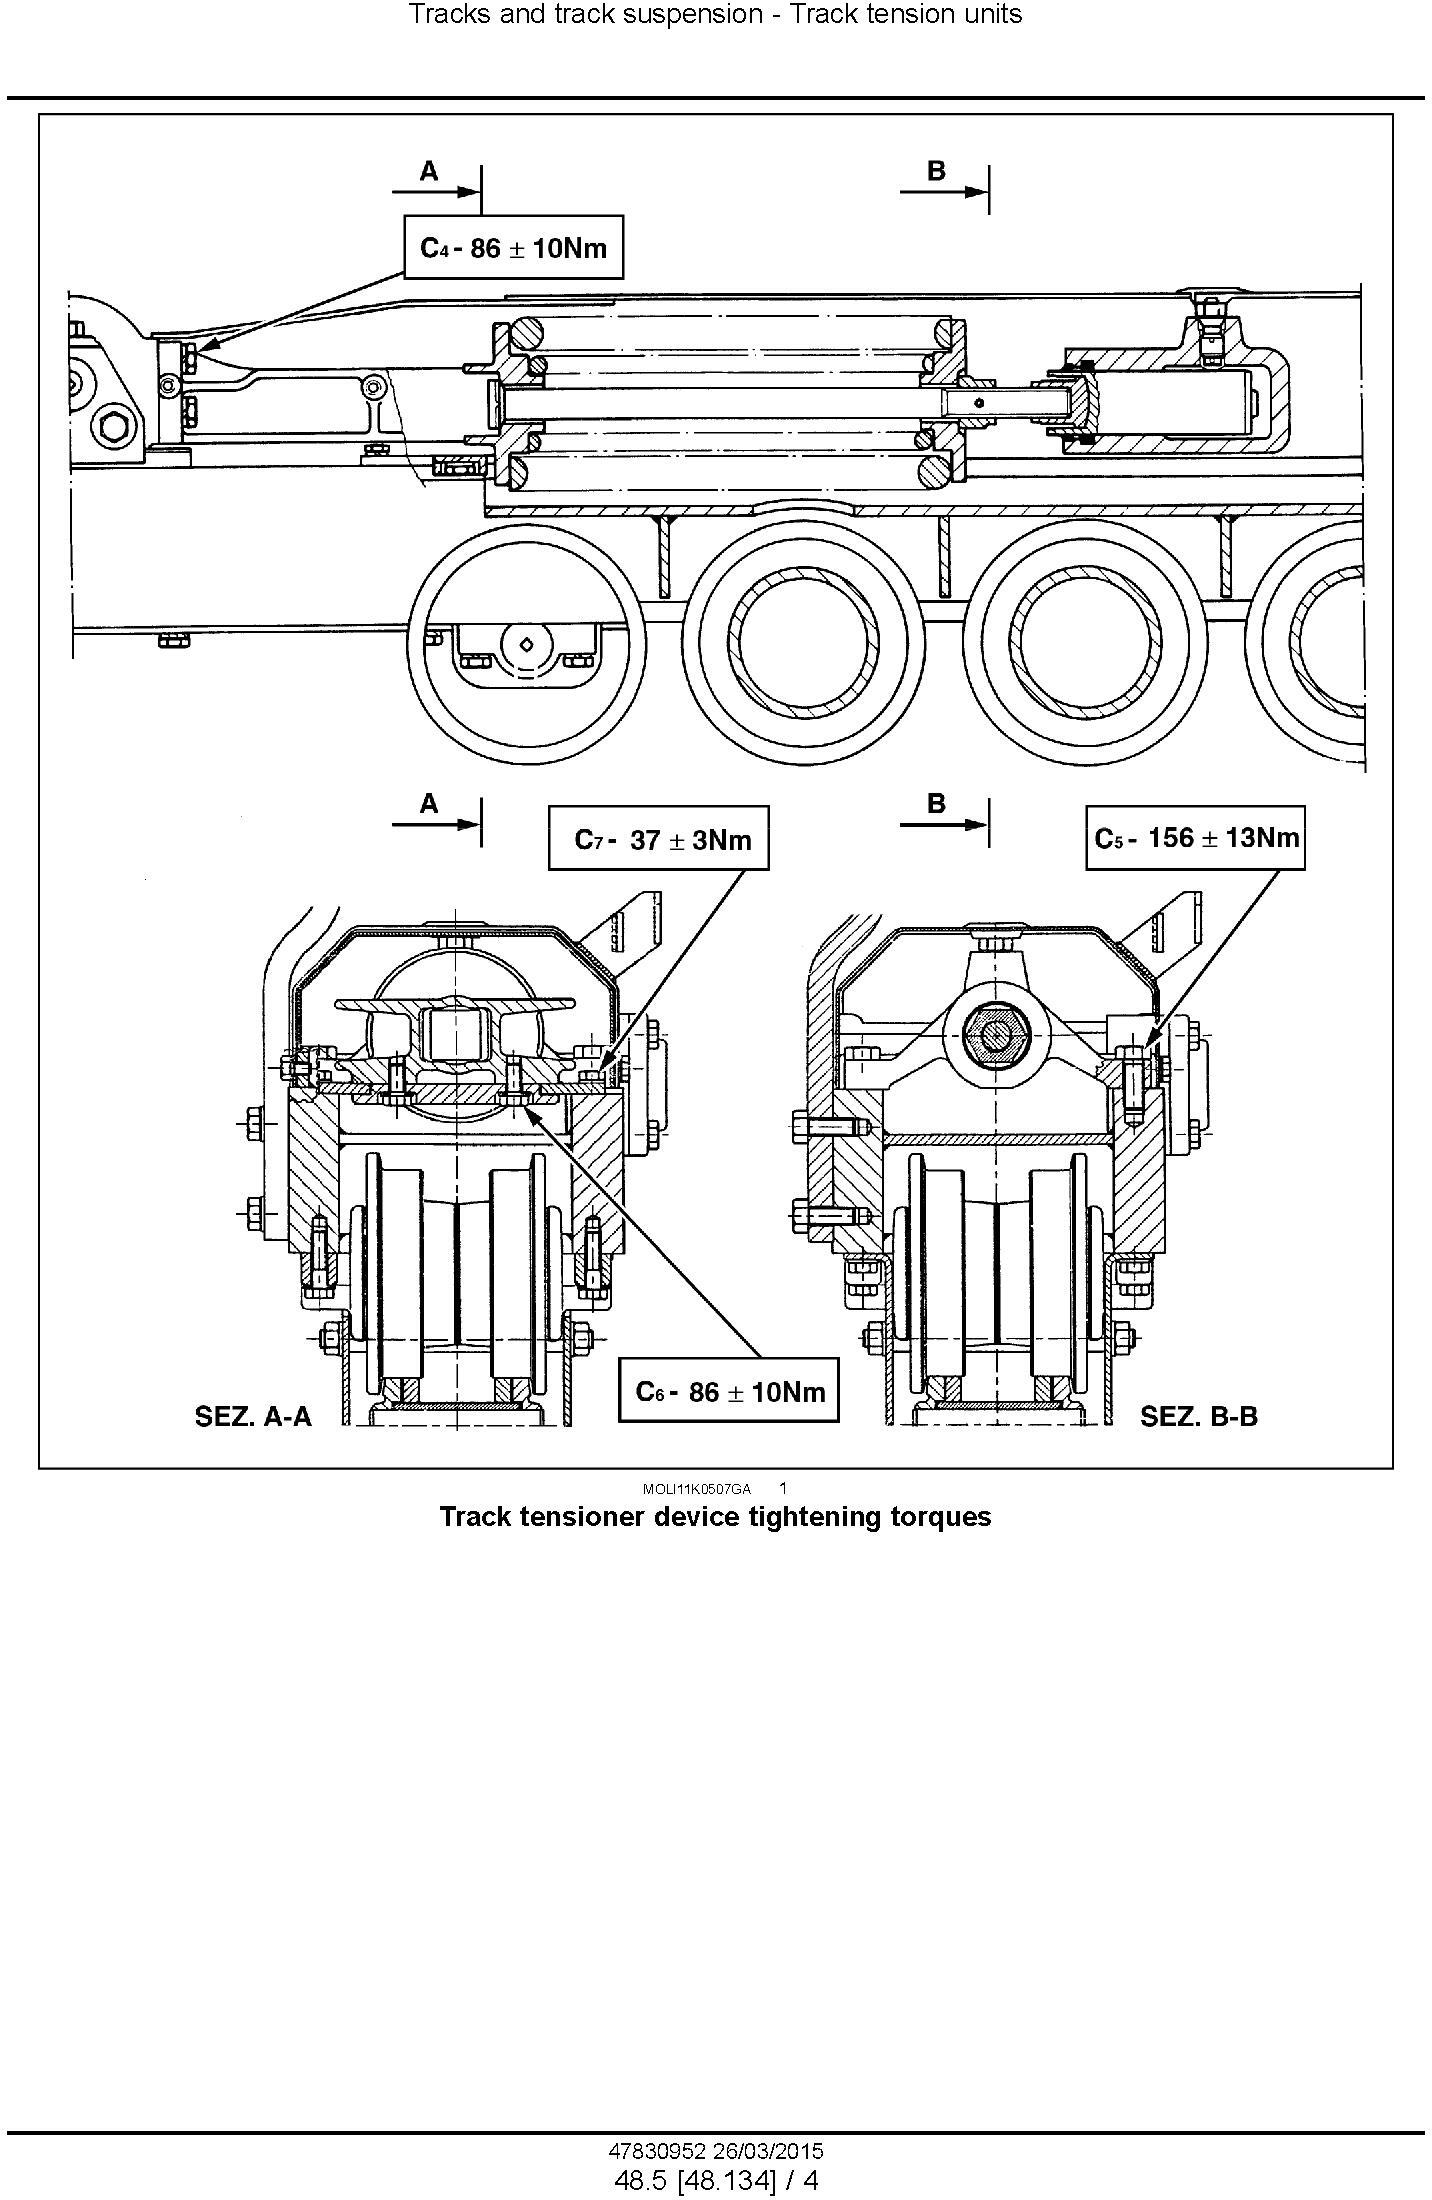 New Holland TK4020 F/V, TK4030 / F/V, TK4040 /M, TK4050 /M, TK4060 Crawler Tractor Service Manual - 3